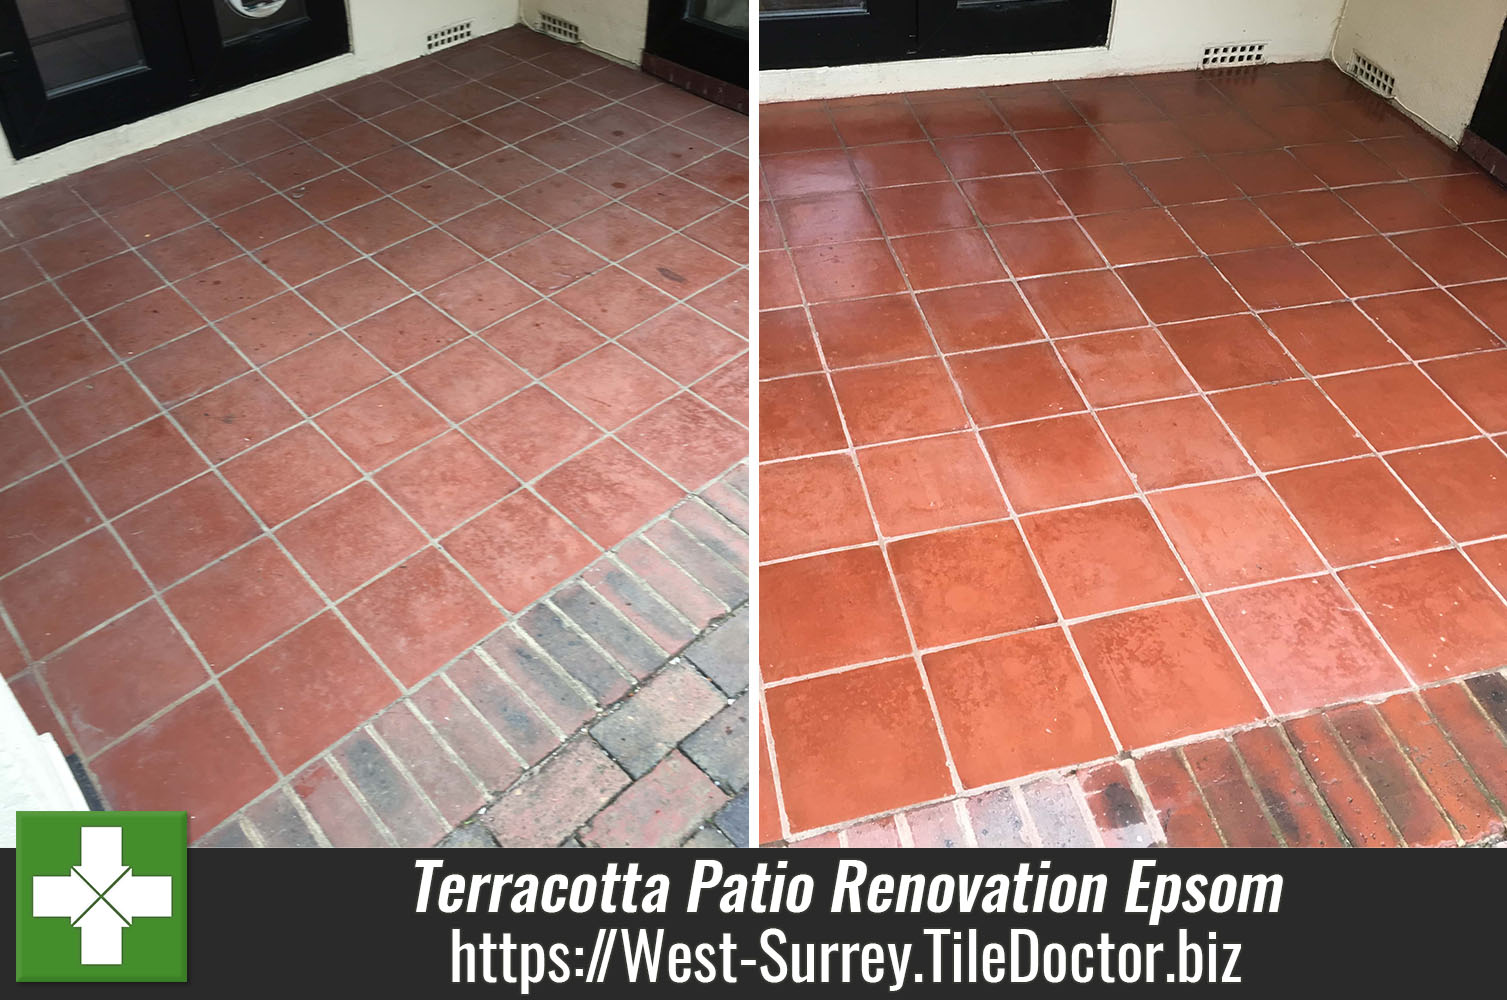 Terracotta Patio Floor Before and After Renovation Epsom